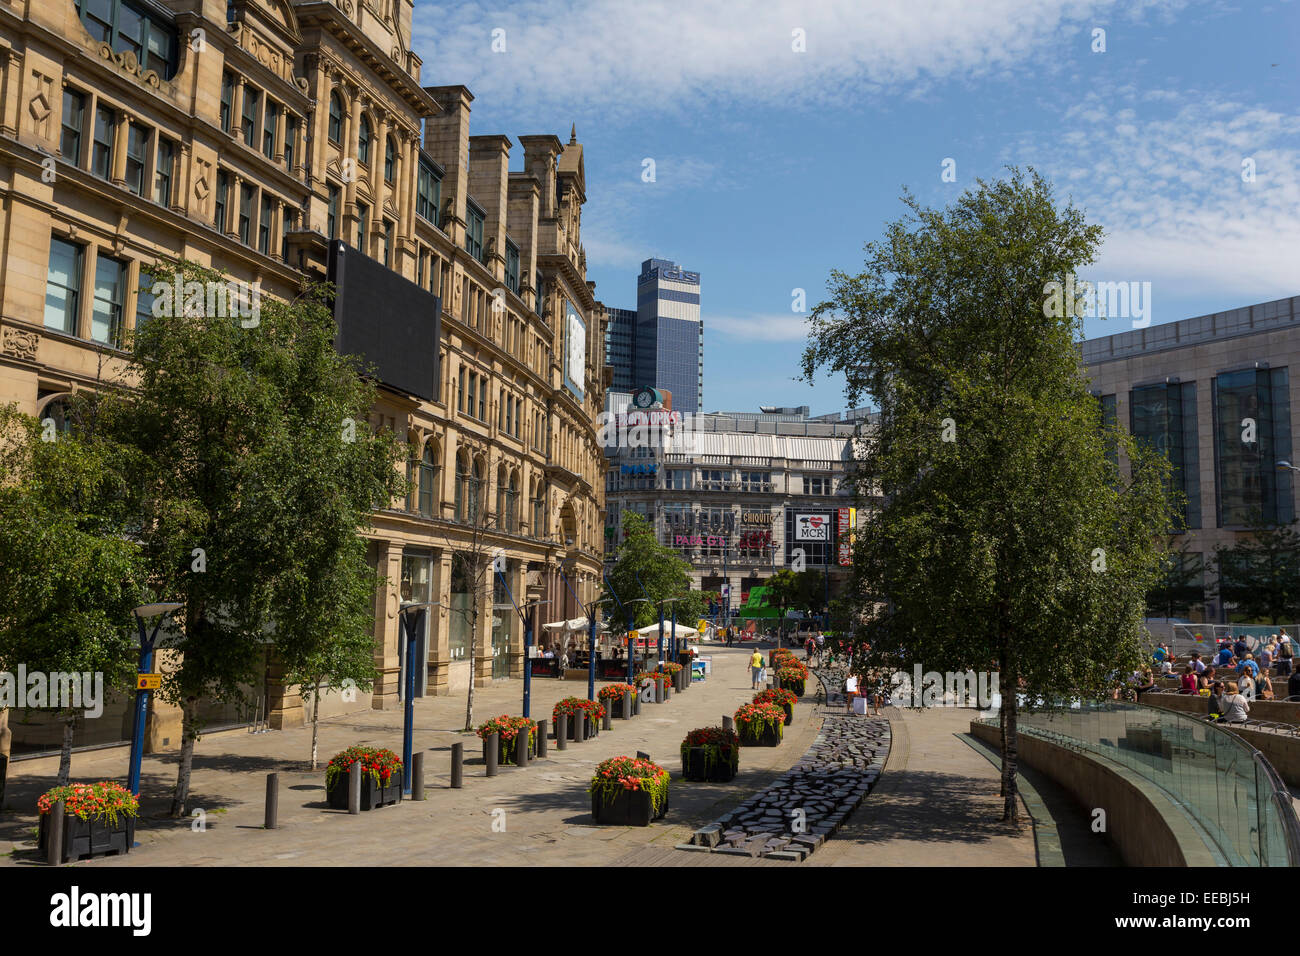 England, Manchester, the Triangle and Printworks area - Stock Image